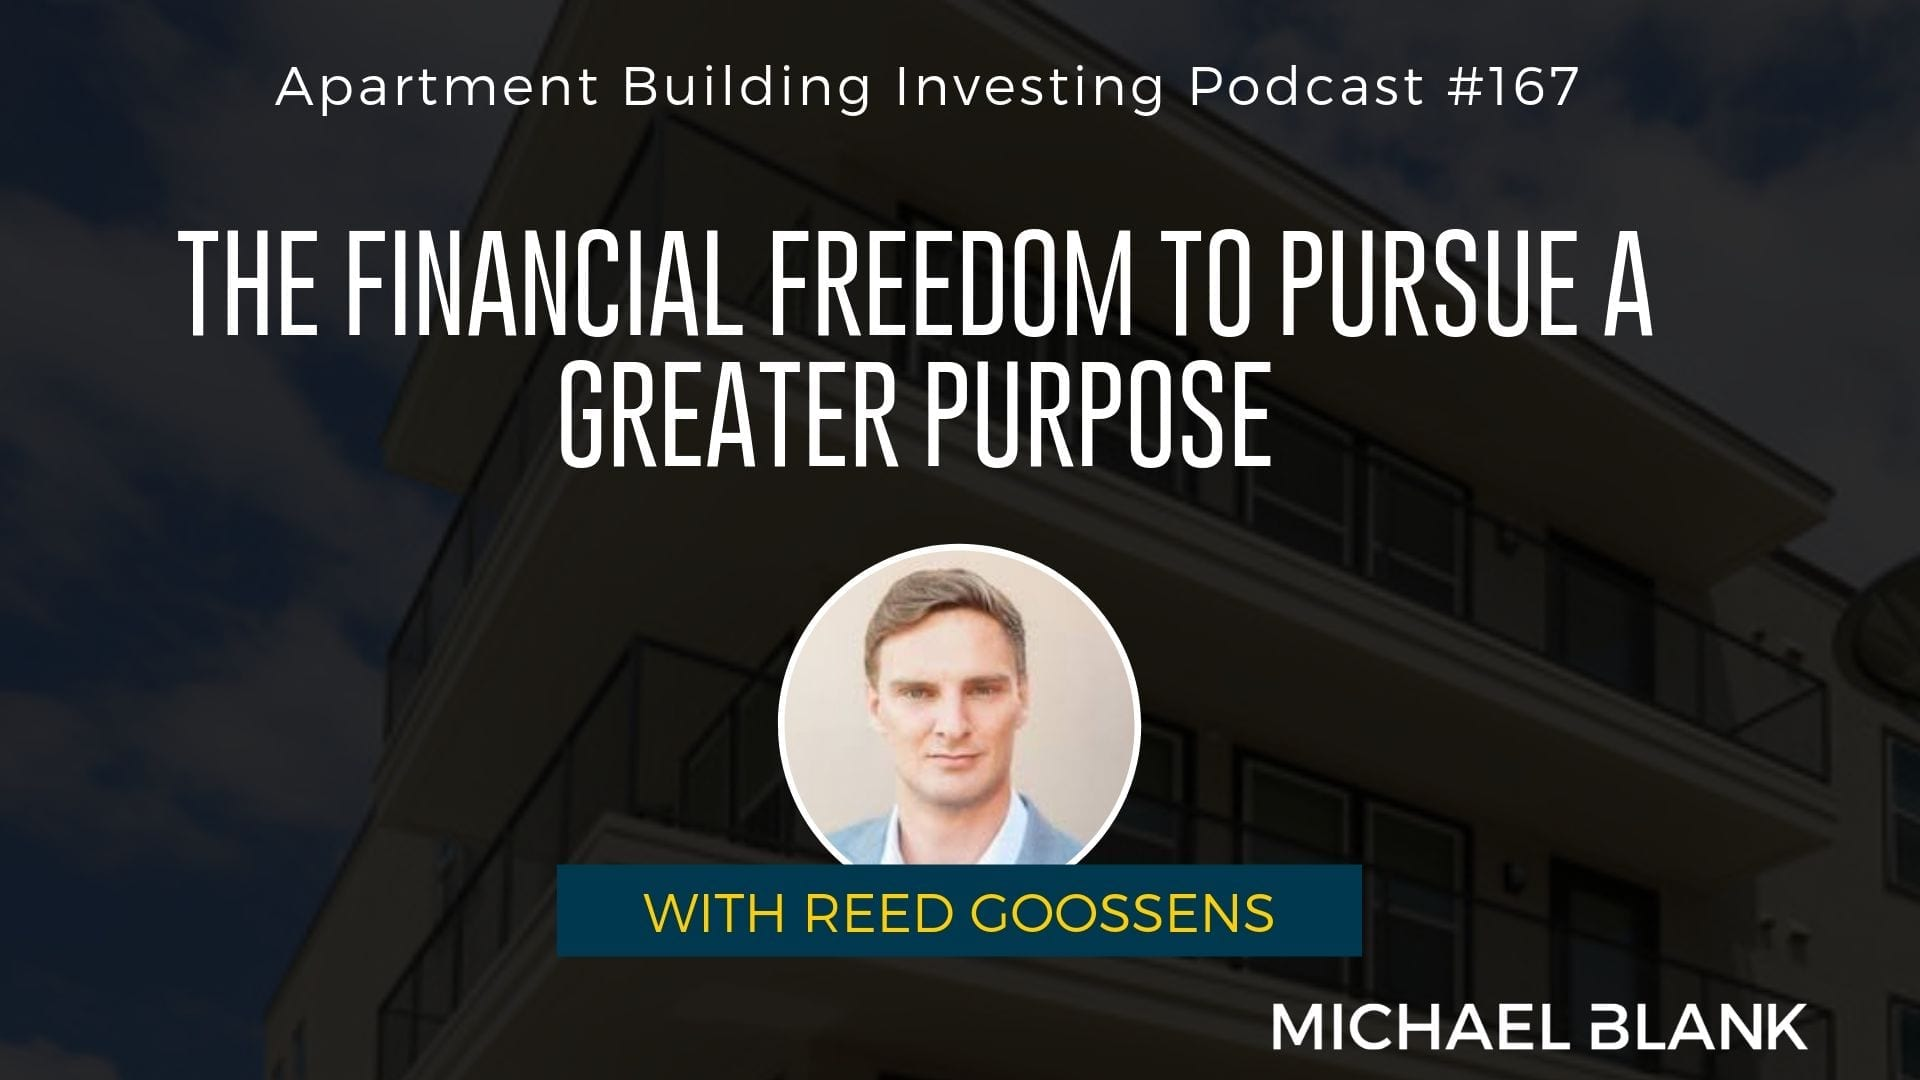 MB 167: The Financial Freedom to Pursue a Greater Purpose – With Reed Goossens